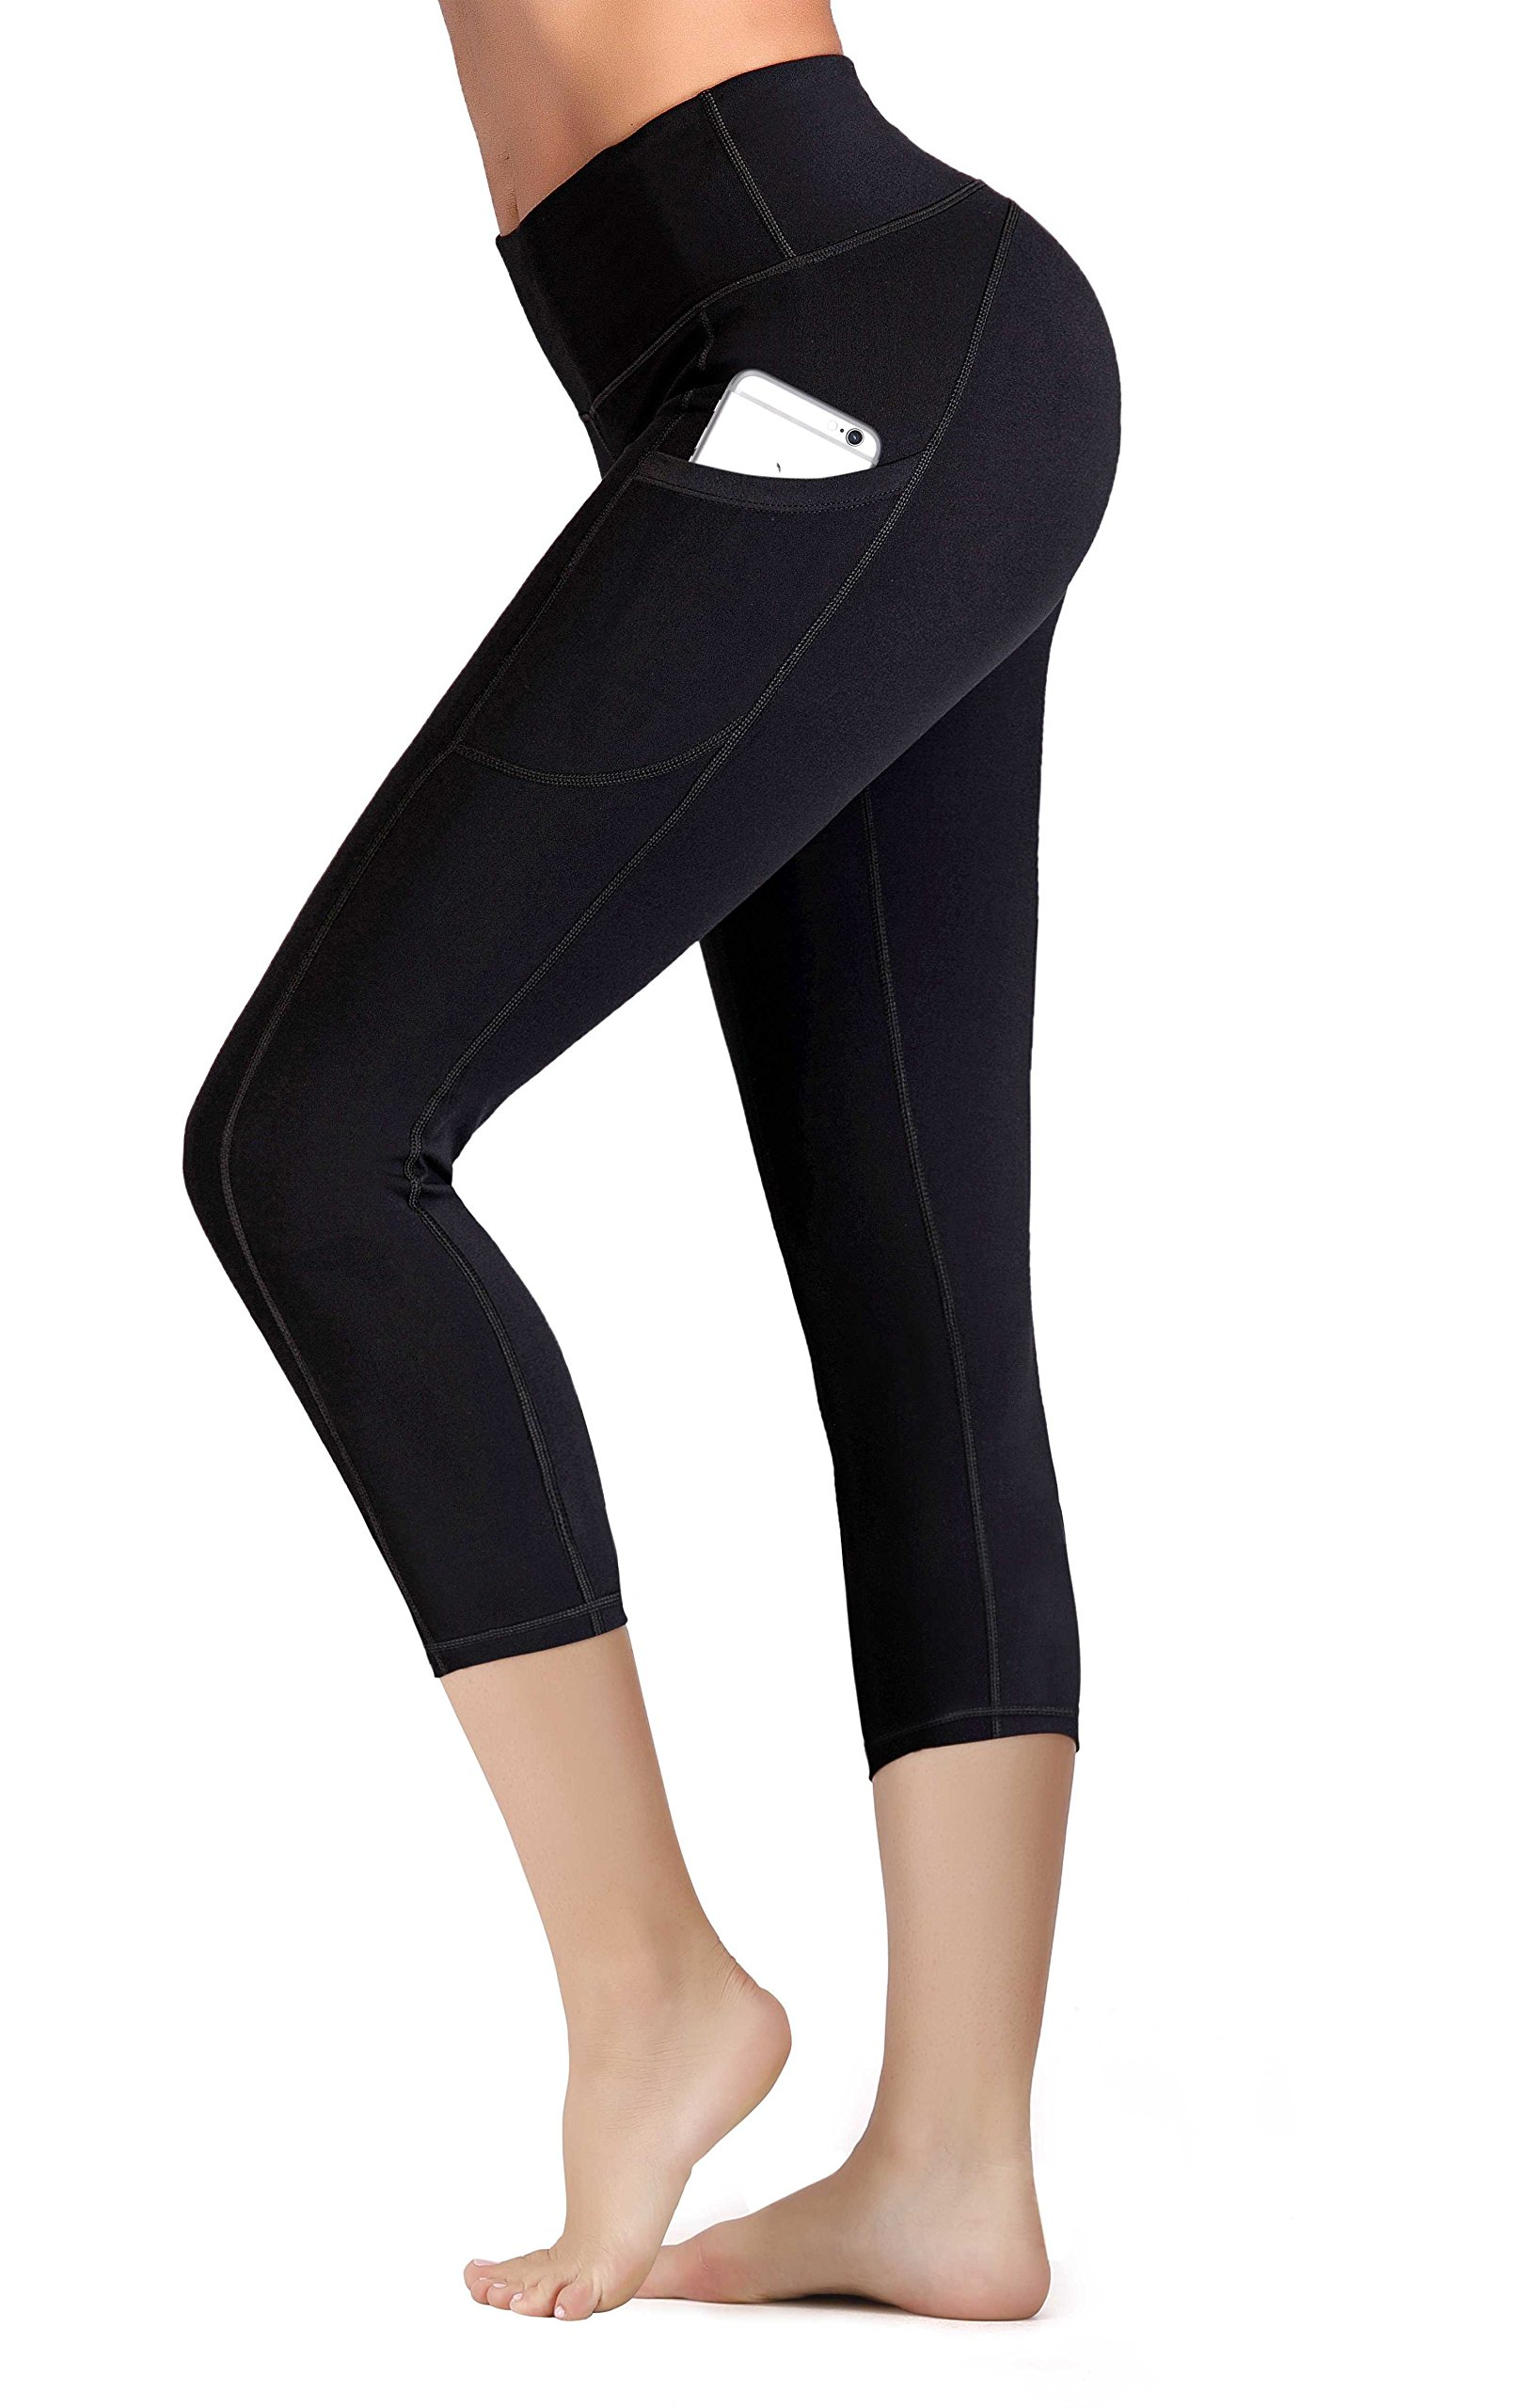 IUGA Yoga Pants with Pockets Tummy Control Workout Running Leggings with Pocke